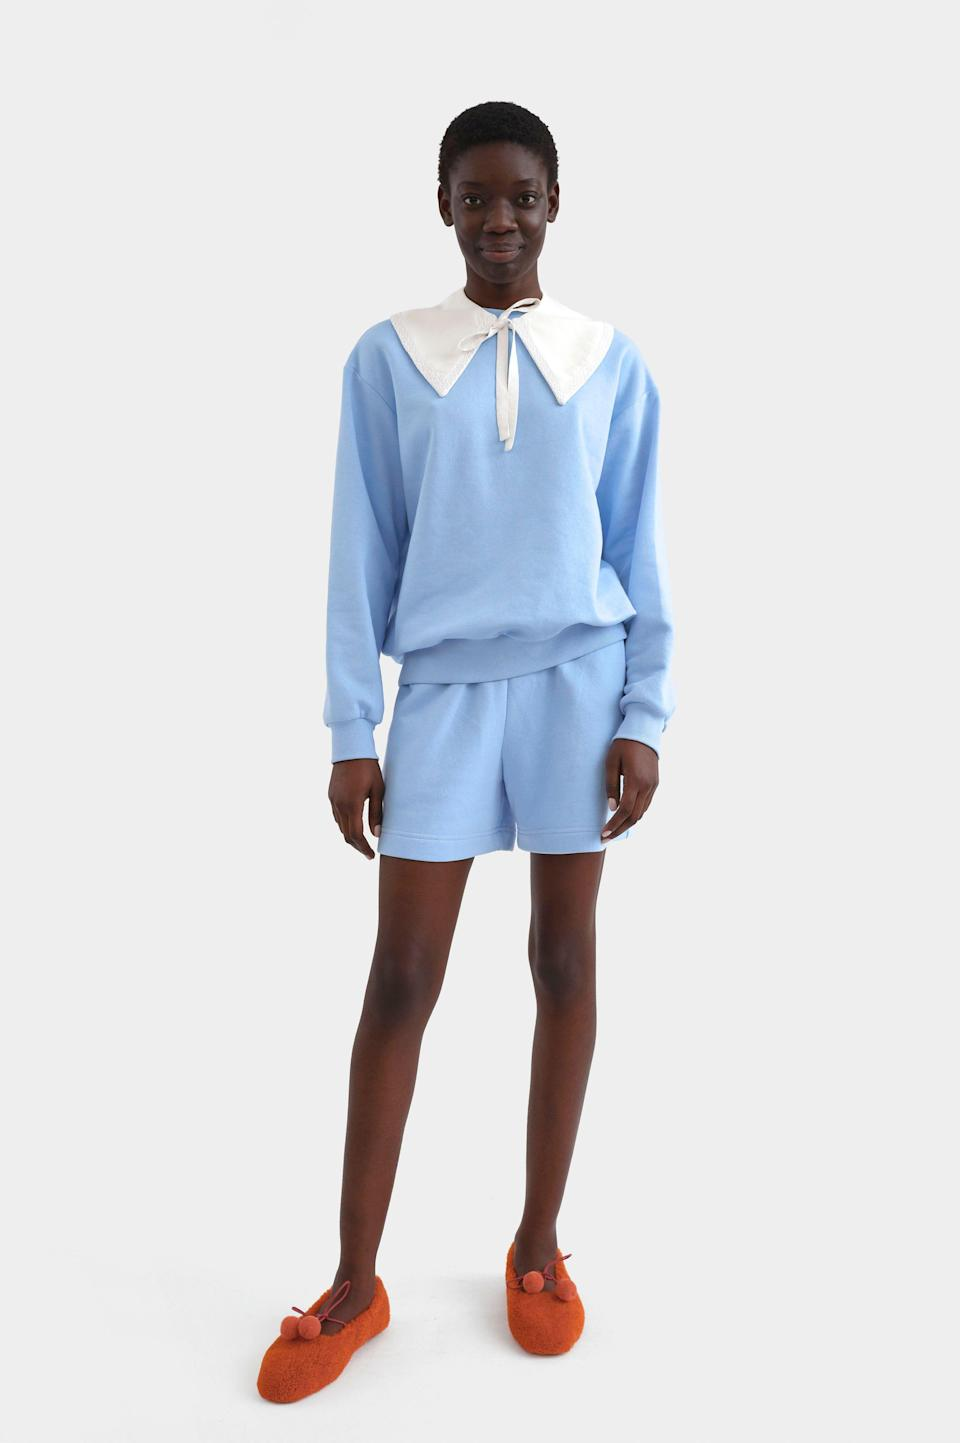 """<p>the-sleeper.com</p><p><strong>$220.00</strong></p><p><a href=""""https://the-sleeper.com/en/product/diana-athpleasure-sweatsuit-with-shorts-in-blue/"""" rel=""""nofollow noopener"""" target=""""_blank"""" data-ylk=""""slk:Shop Now"""" class=""""link rapid-noclick-resp"""">Shop Now</a></p><p>""""Summer's end, for me, is mostly bitter—but the sartorial opportunities that come with cooler weather makes it slightly more sweet. I recently ordered this matching """"Diana"""" set from Sleeper, which comes with a detachable cotton collar (!!) and endless styling opportunities: layered over an oversized striped button down, dressed up with bold jewelry and heels, or worn as is, perhaps with sneakers and a hat.""""—<em>Lucia Tonelli, Associate Editor</em></p>"""